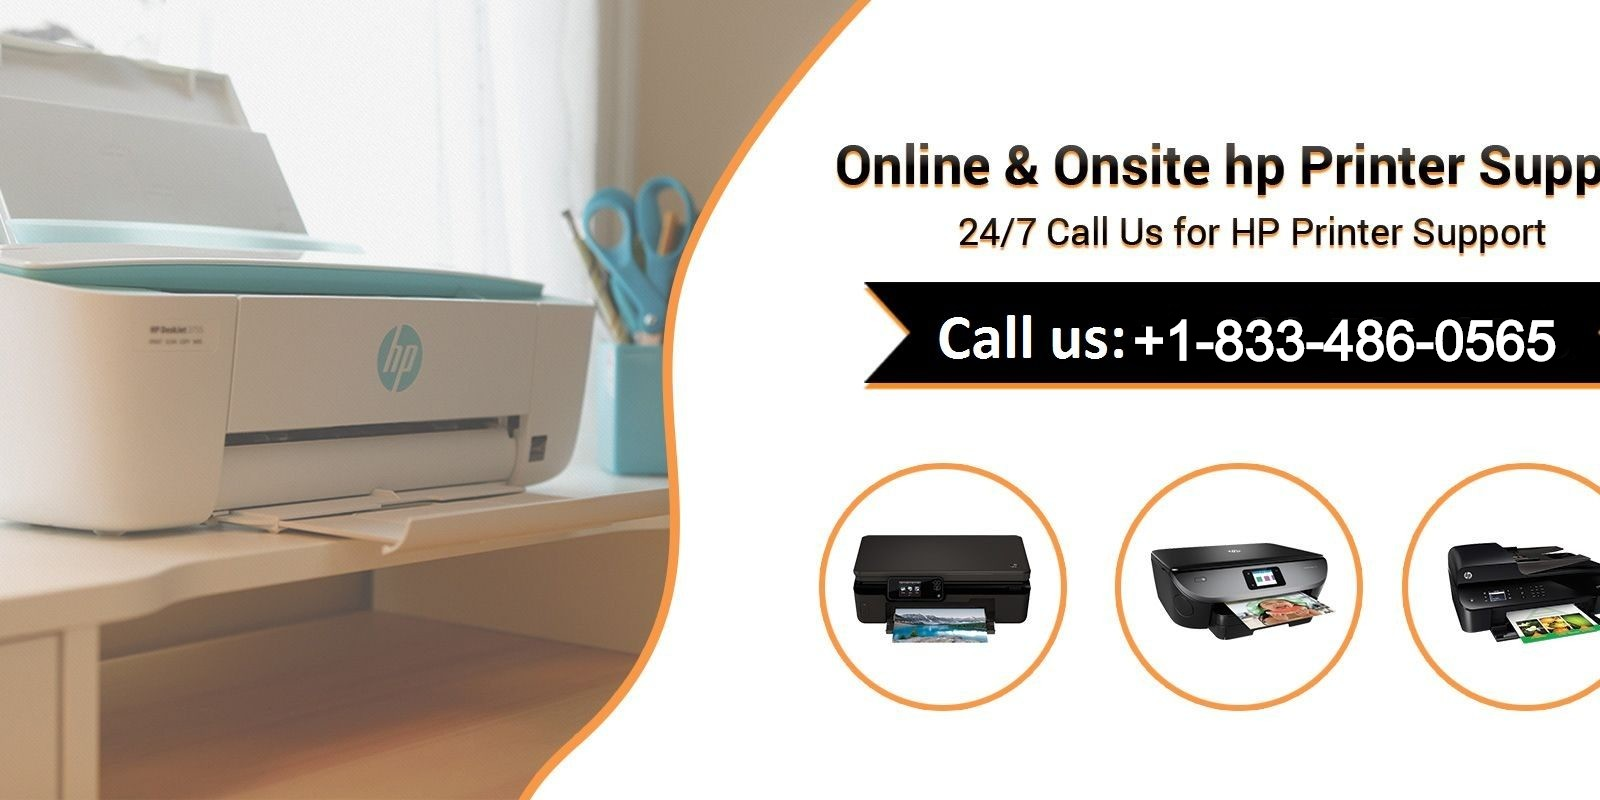 Unsupported HP Printer to Work On Mac OS,HP Printer Support Number